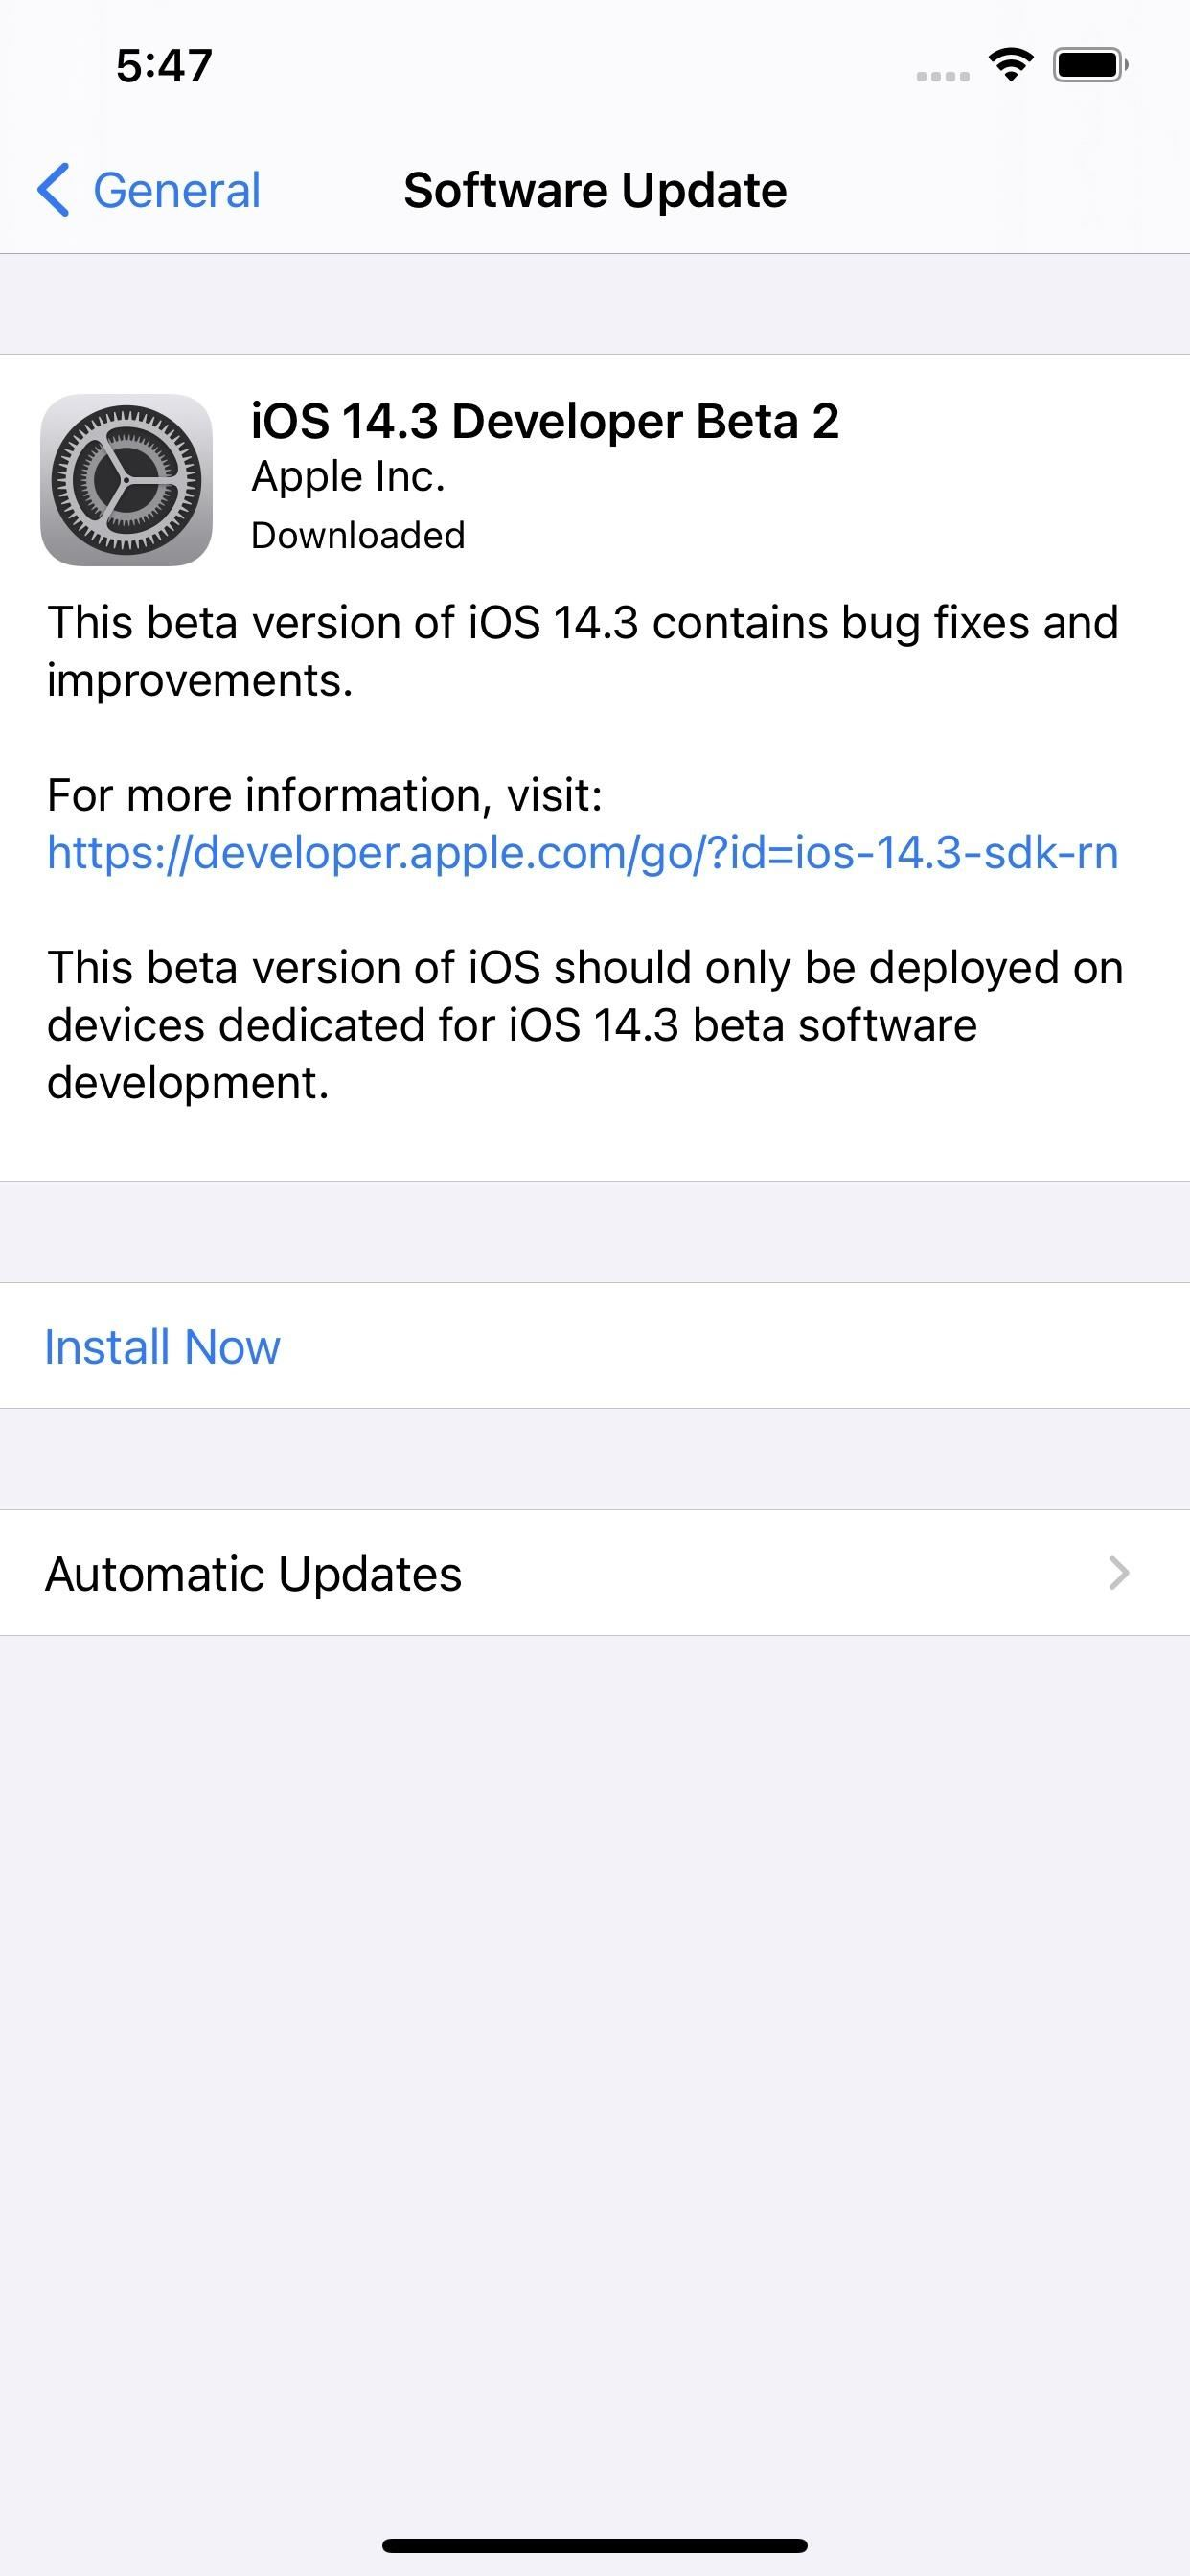 Apple is releasing iOS 14.3 Beta 2 for developers and public beta users